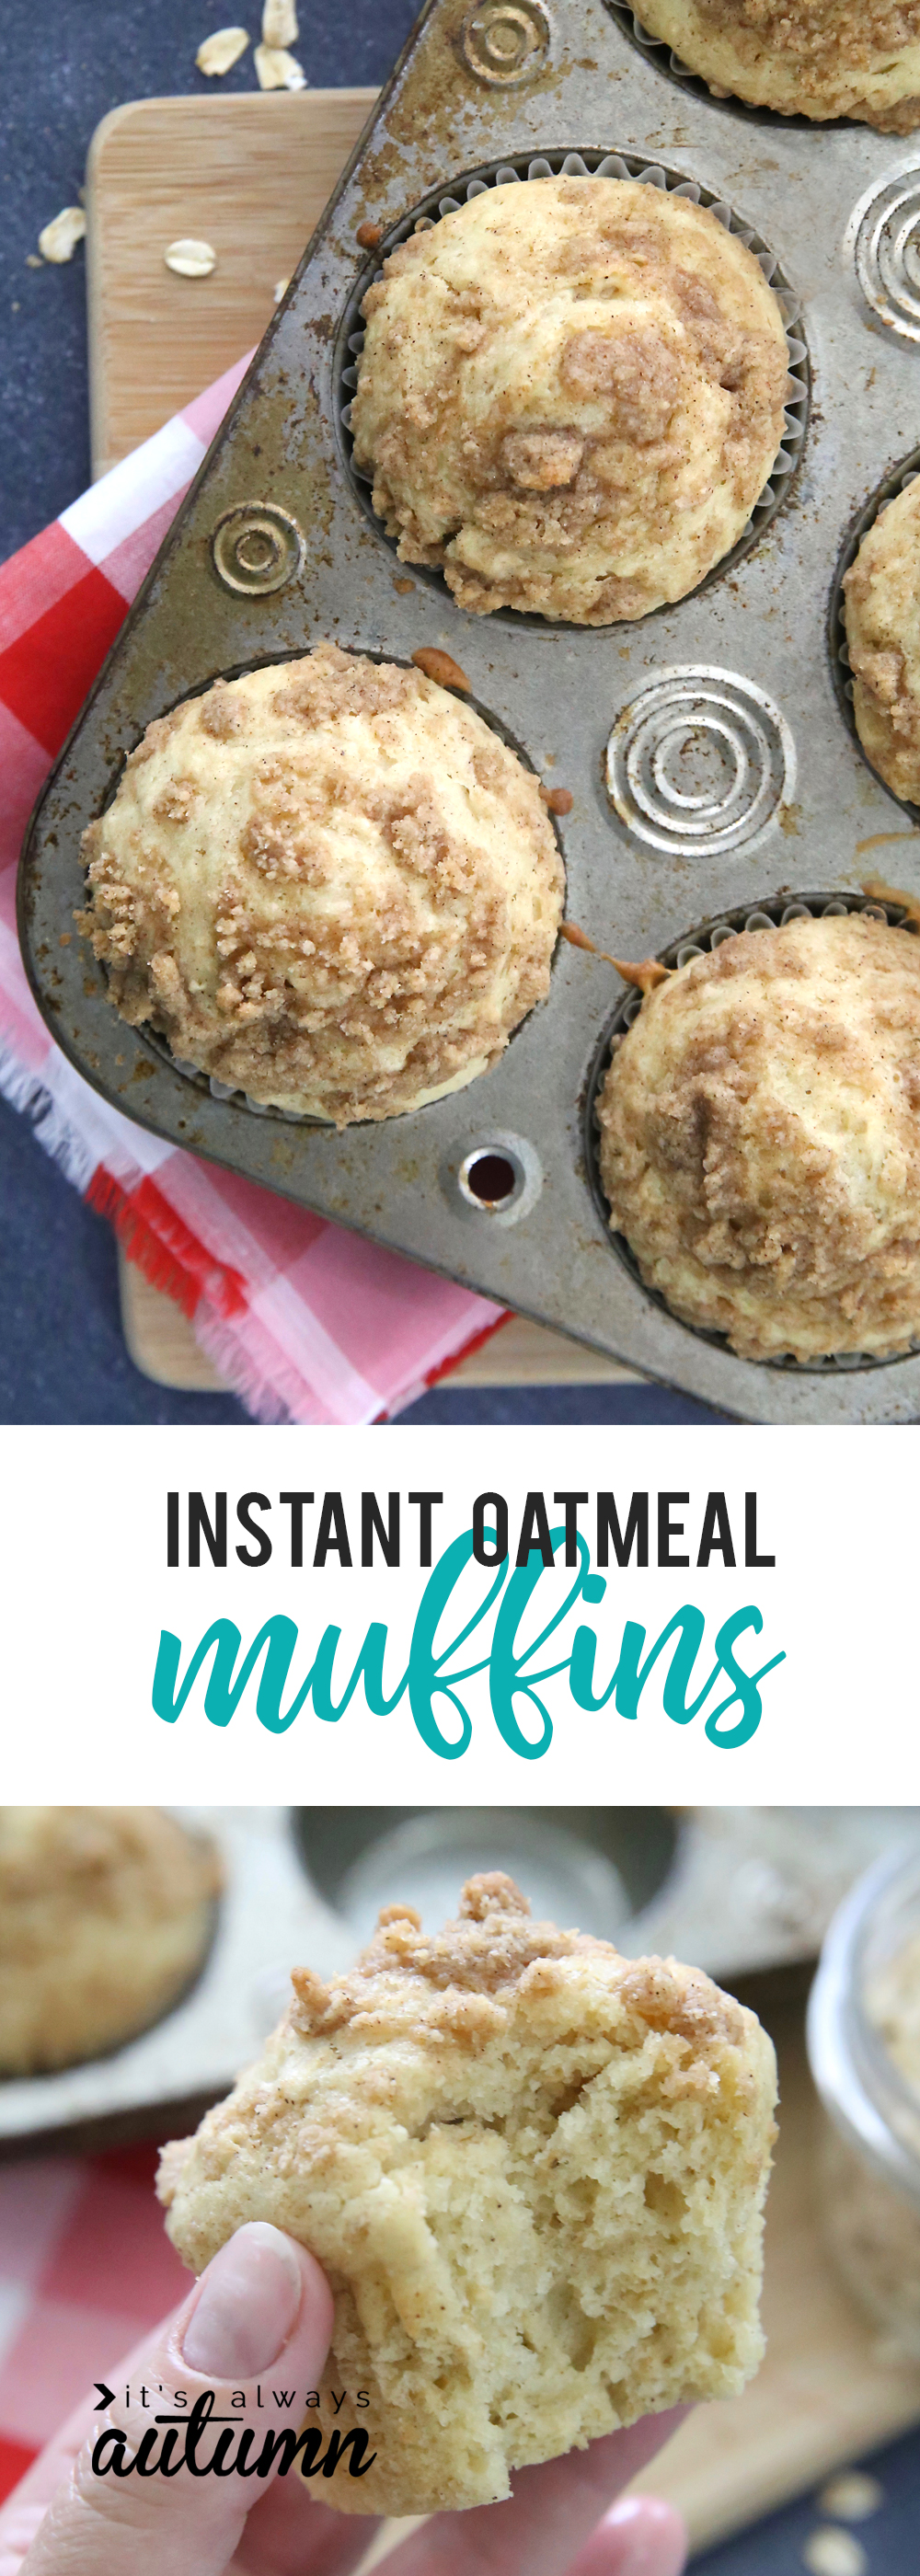 Collage: muffins in a tin; hand holding an instant oatmeal muffin with a bite taken out of it